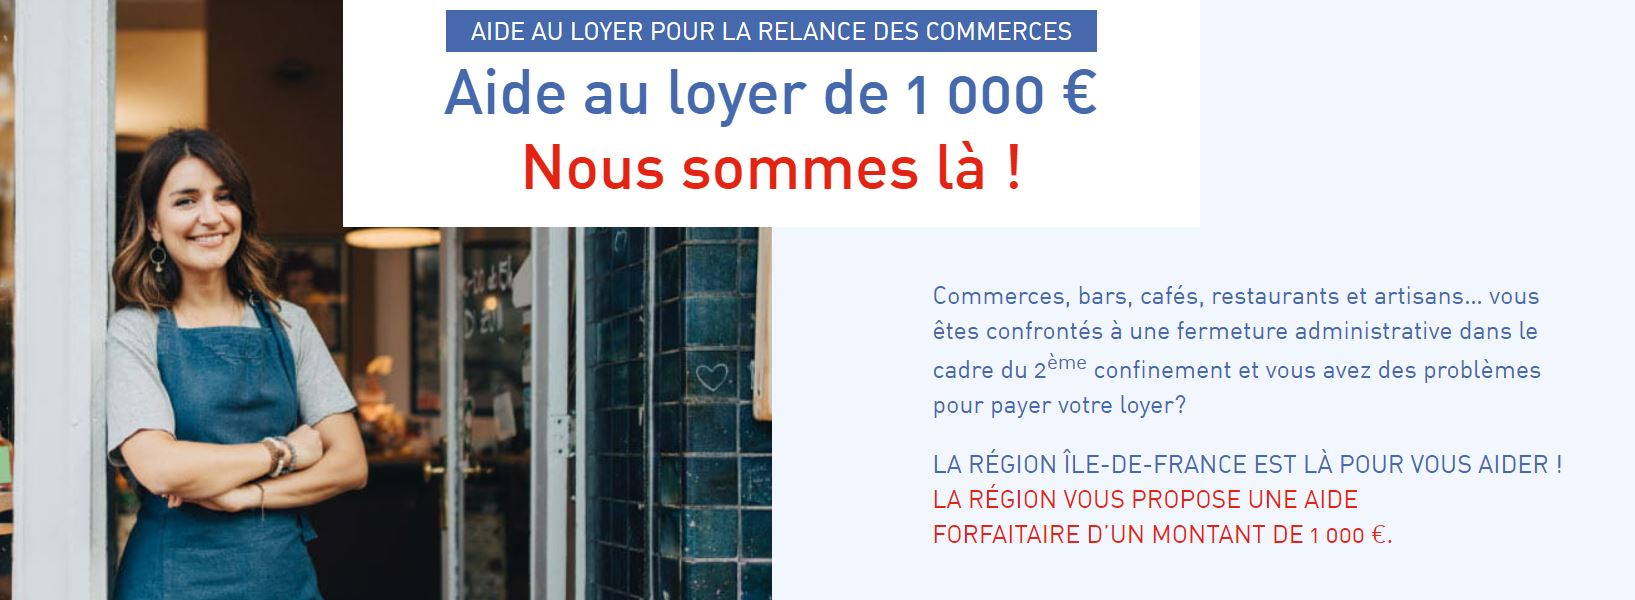 Commerce : aide au loyer